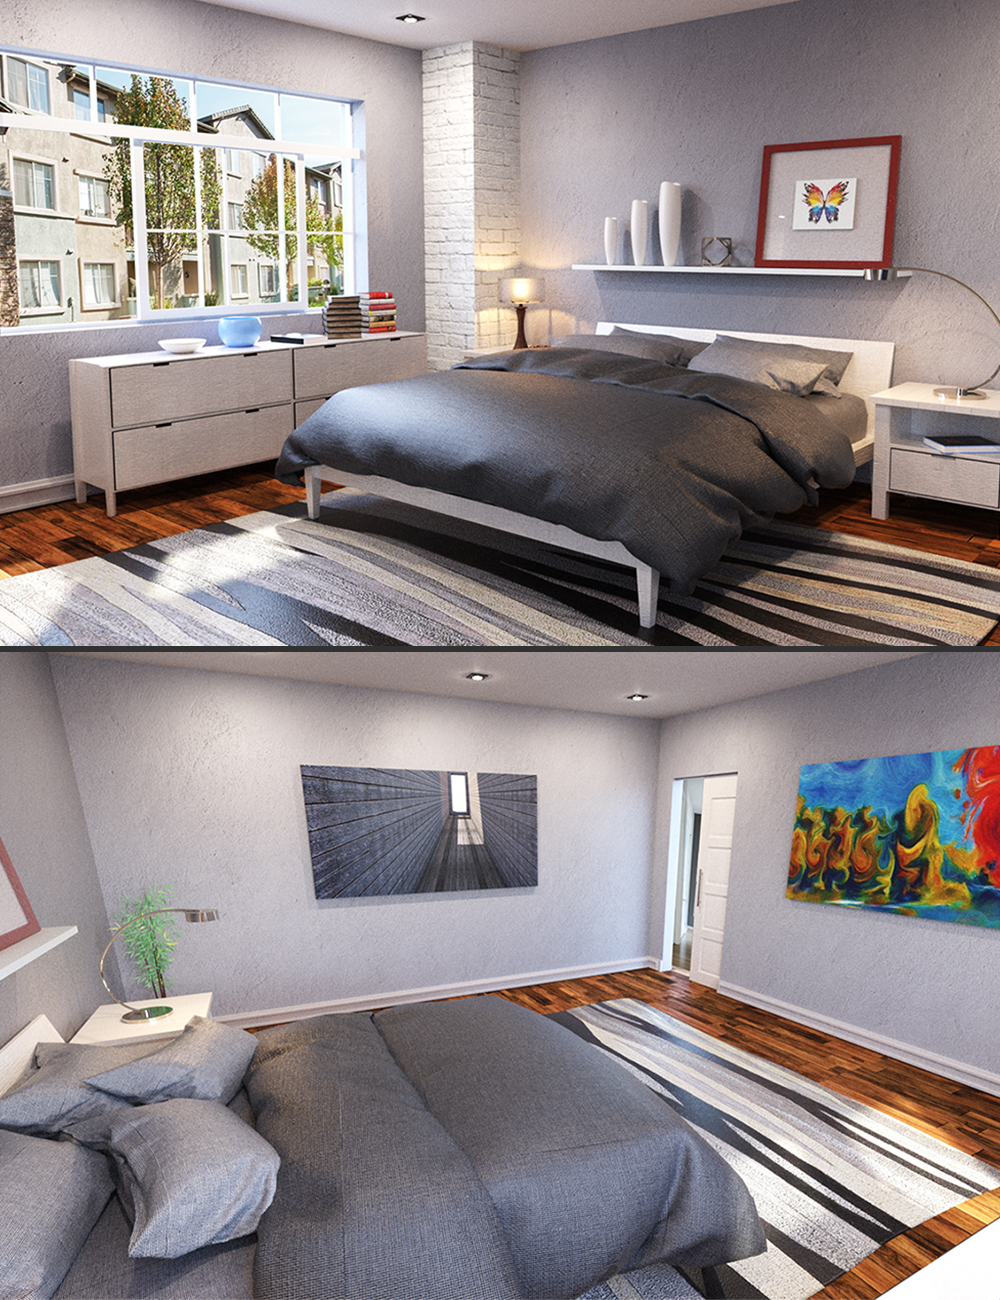 PX Modern Bedroom by: PerspectX, 3D Models by Daz 3D